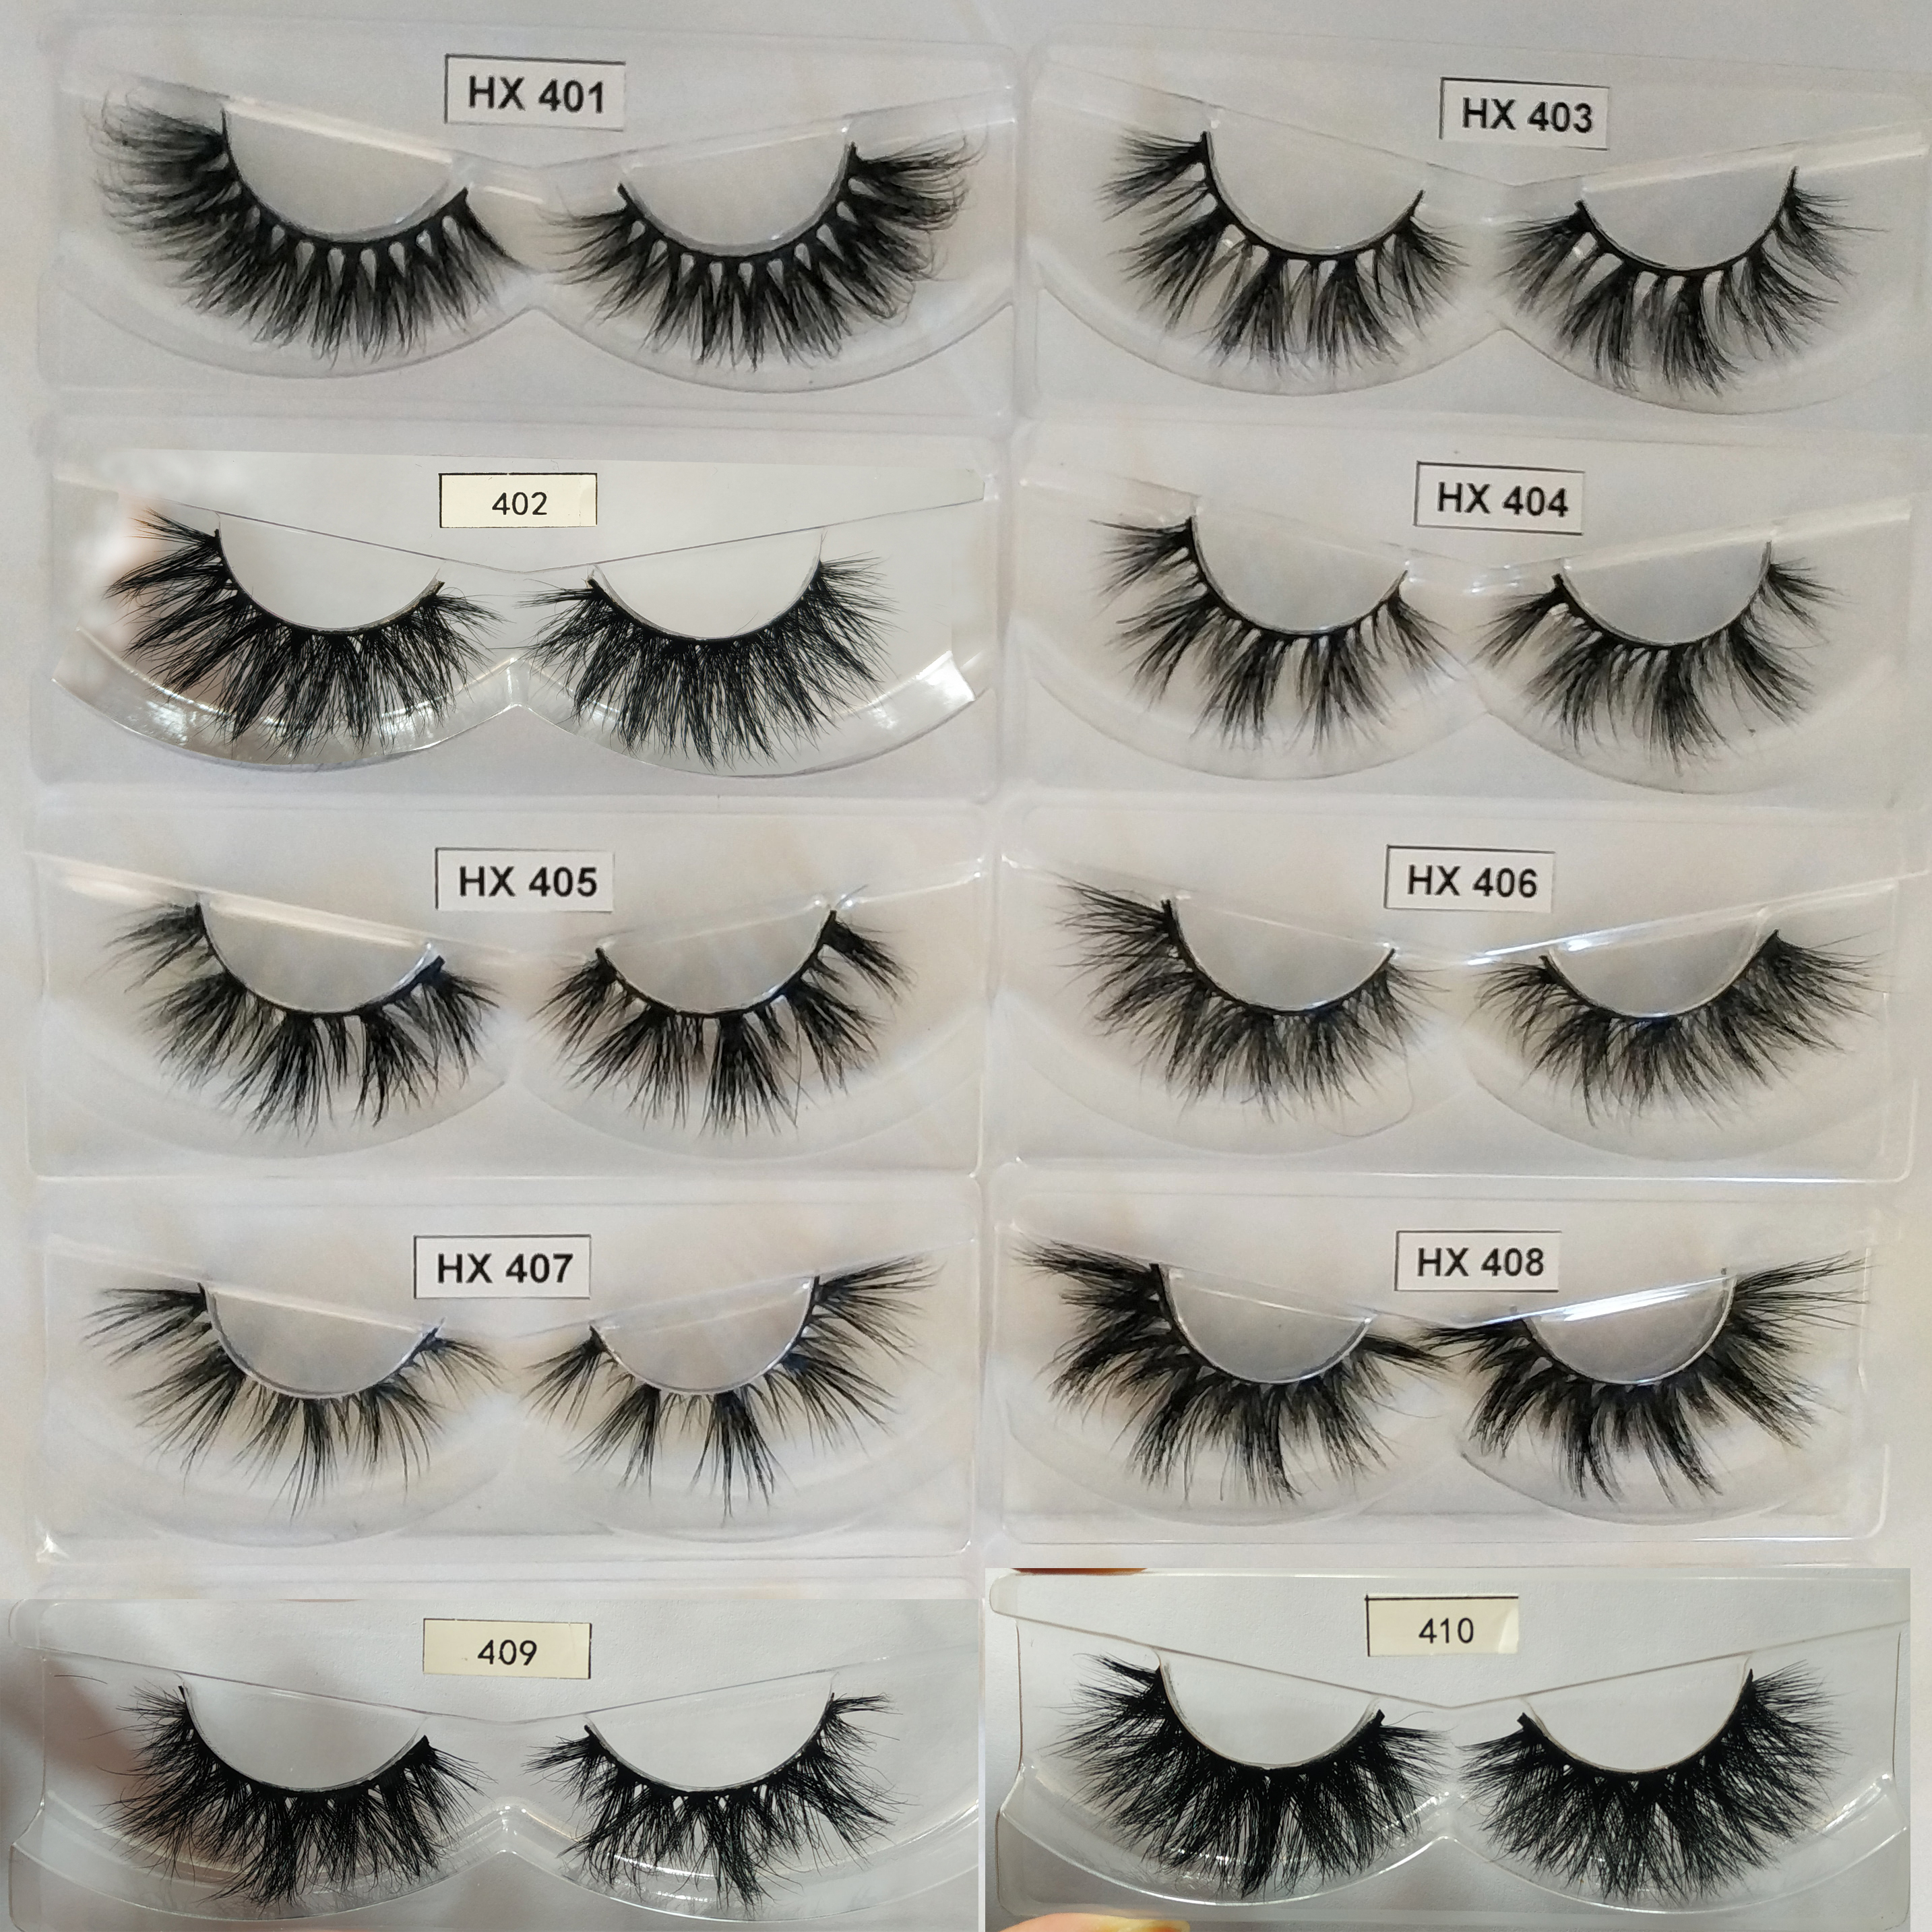 HEXUAN Mink Eyelashes For Makeup 20mm Lashes For ресницы для наращиванияресницы Faux Cils False Eyelashes For Beauty